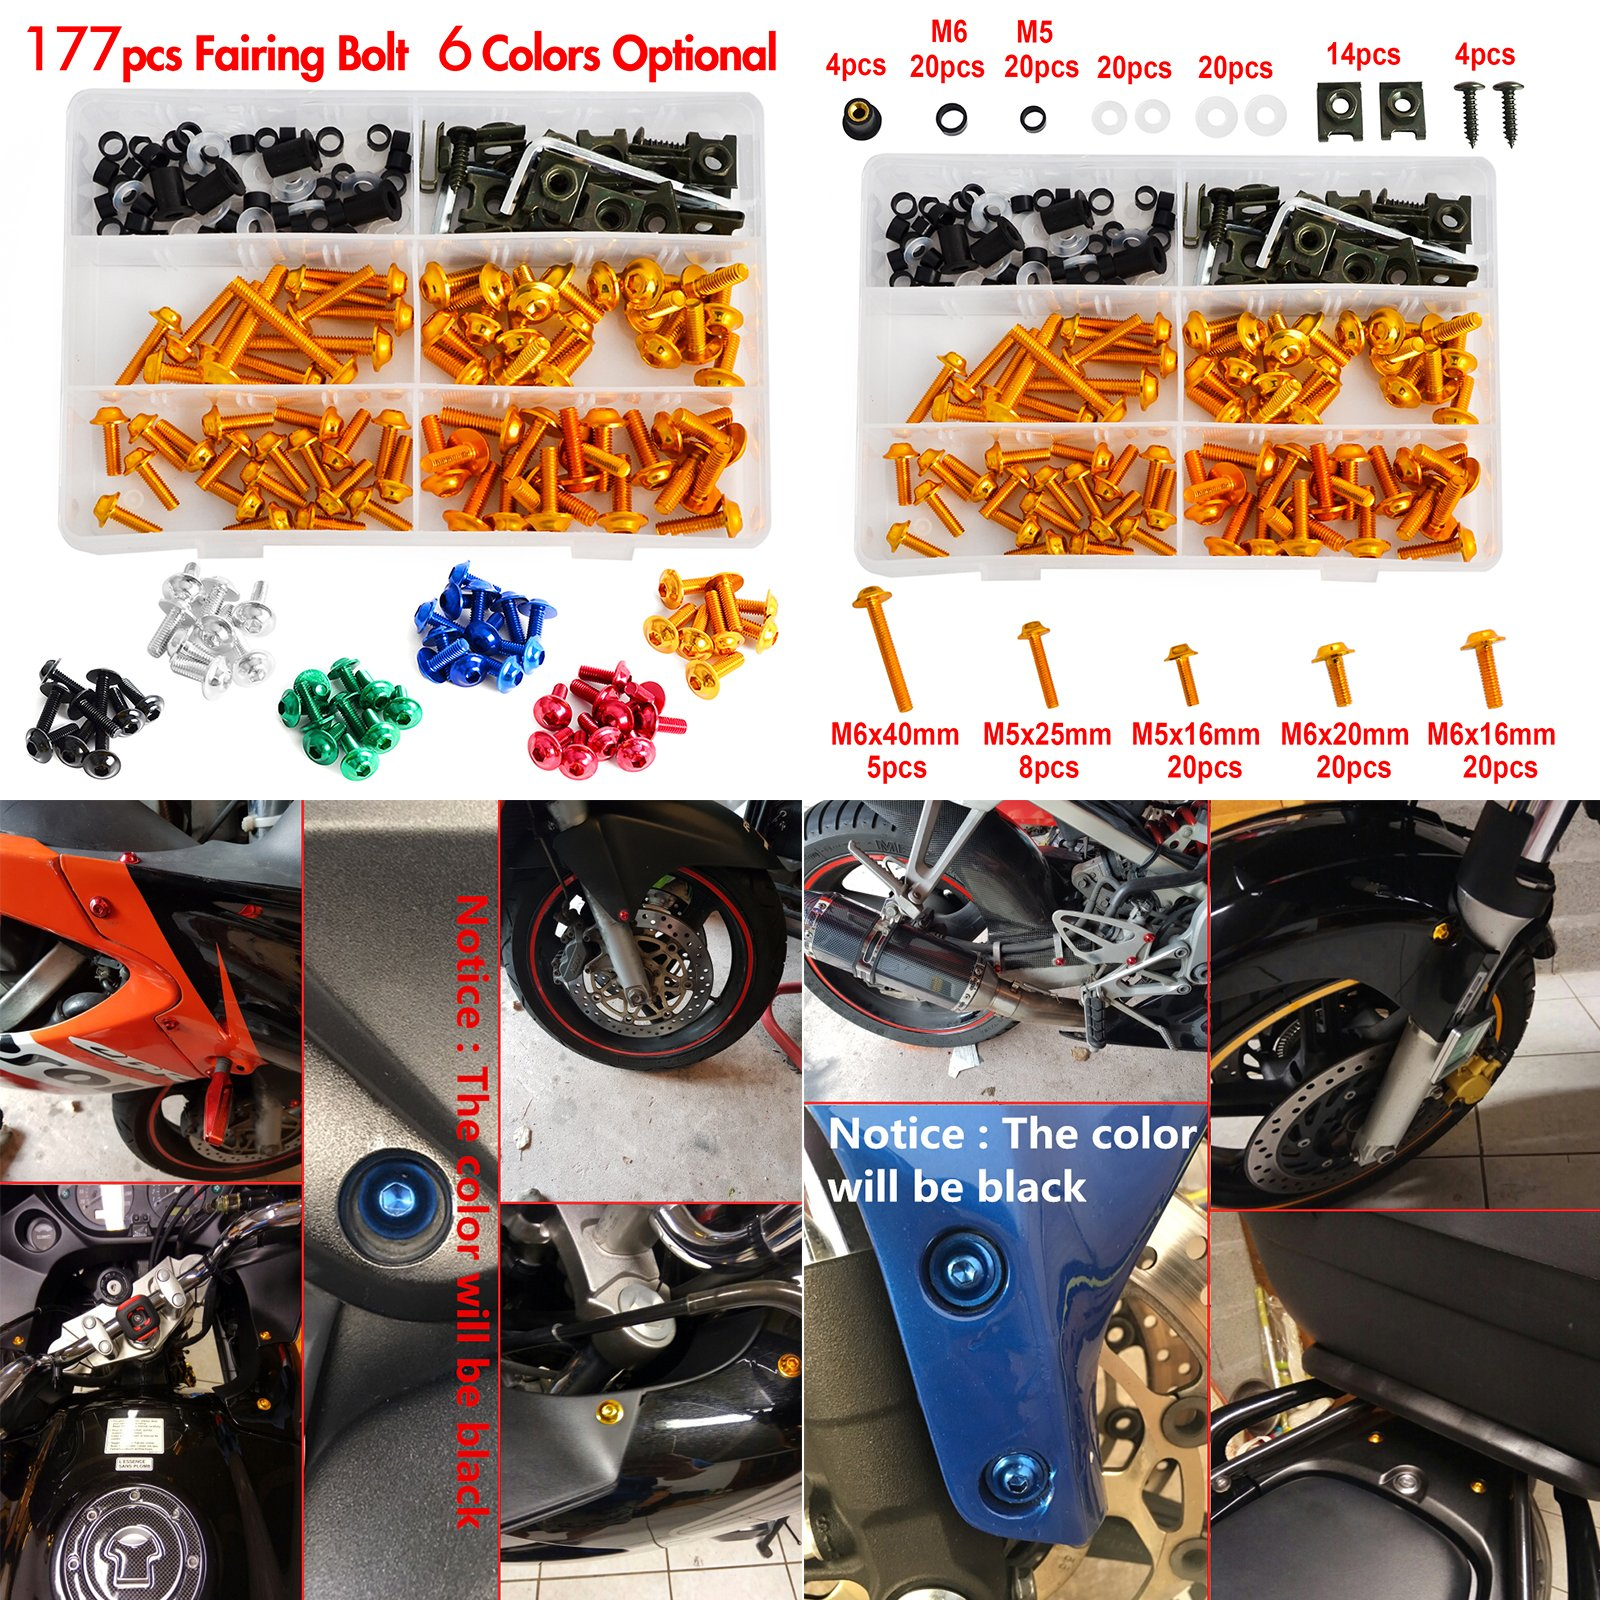 NICECNC Gold Aluminum Windscreen Fairing Bolts Kit Fastener Clips Screws for Motorcycle Sportbike Honda,Yamaha,Kawasaki Suzuki,Aprilia MV Agusta Triumph